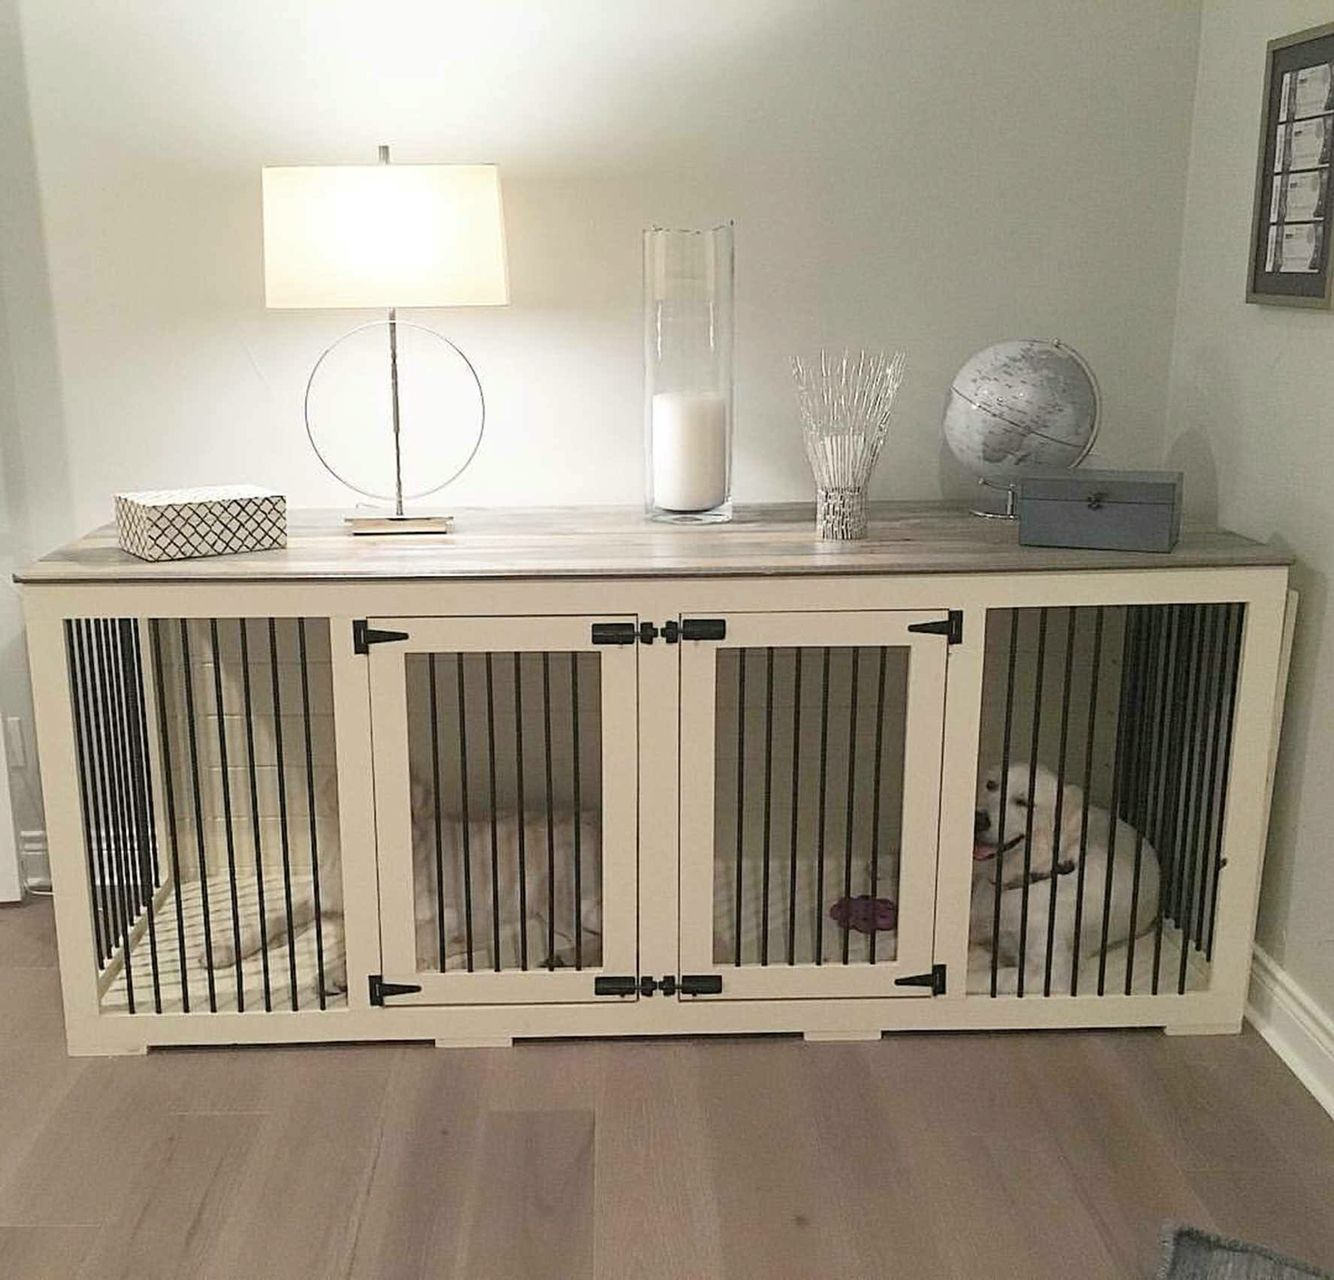 multipurpose and modern dog kennel love this  dogs and puppies  - multipurpose and modern dog kennel love this